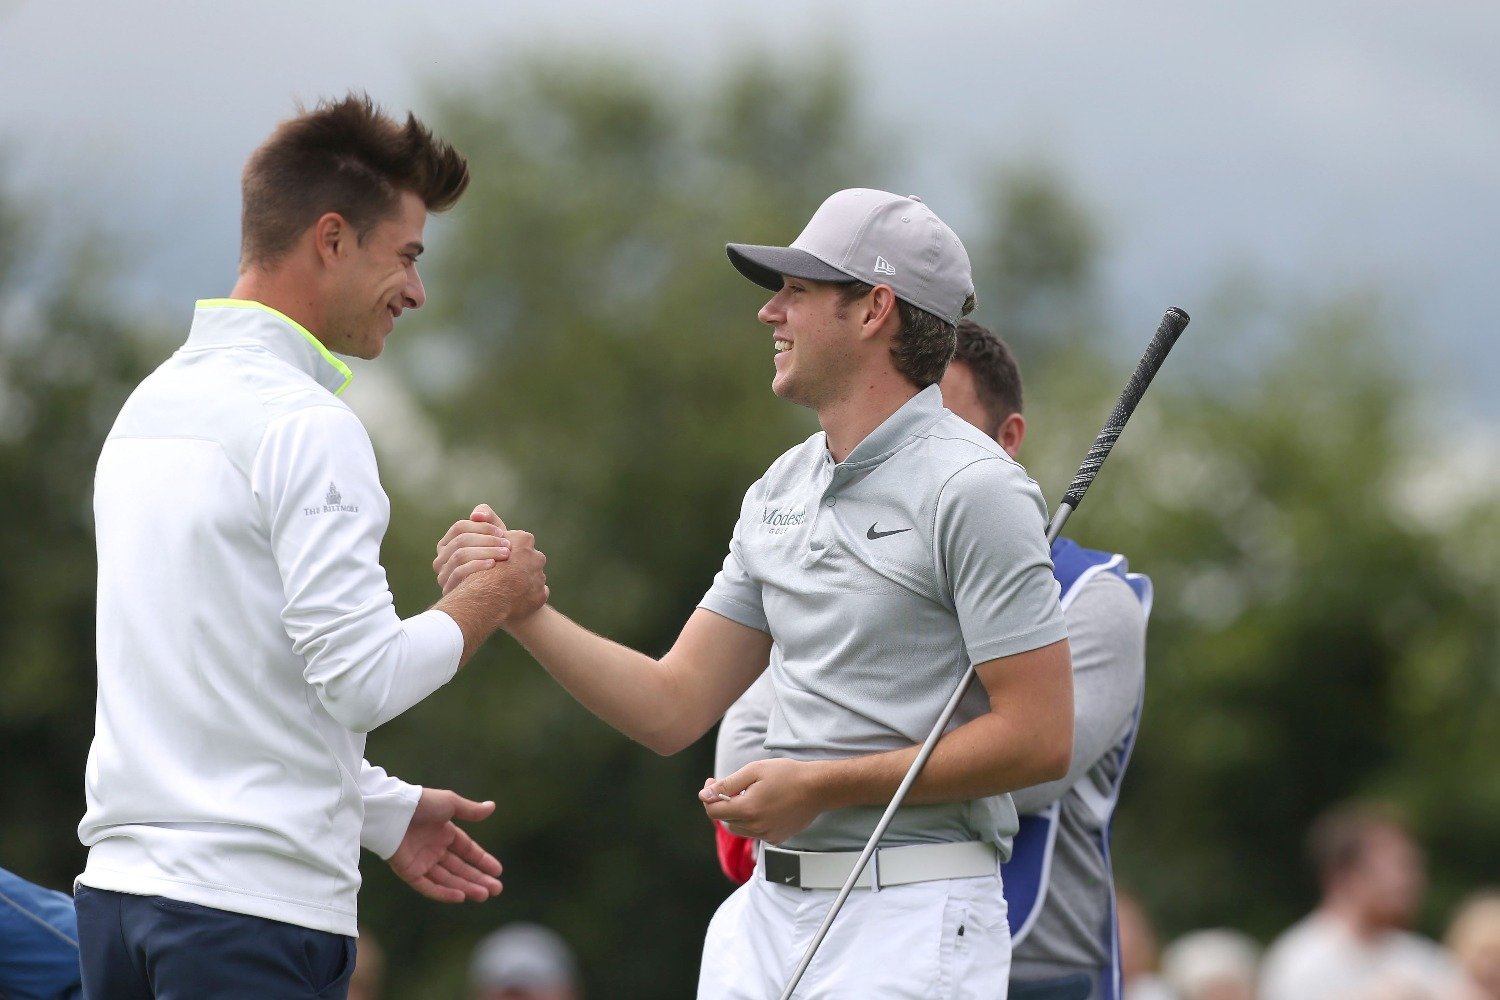 EXCLUSIVE! Niall Horan talks to GM about Modest! Golf and Galvin Green